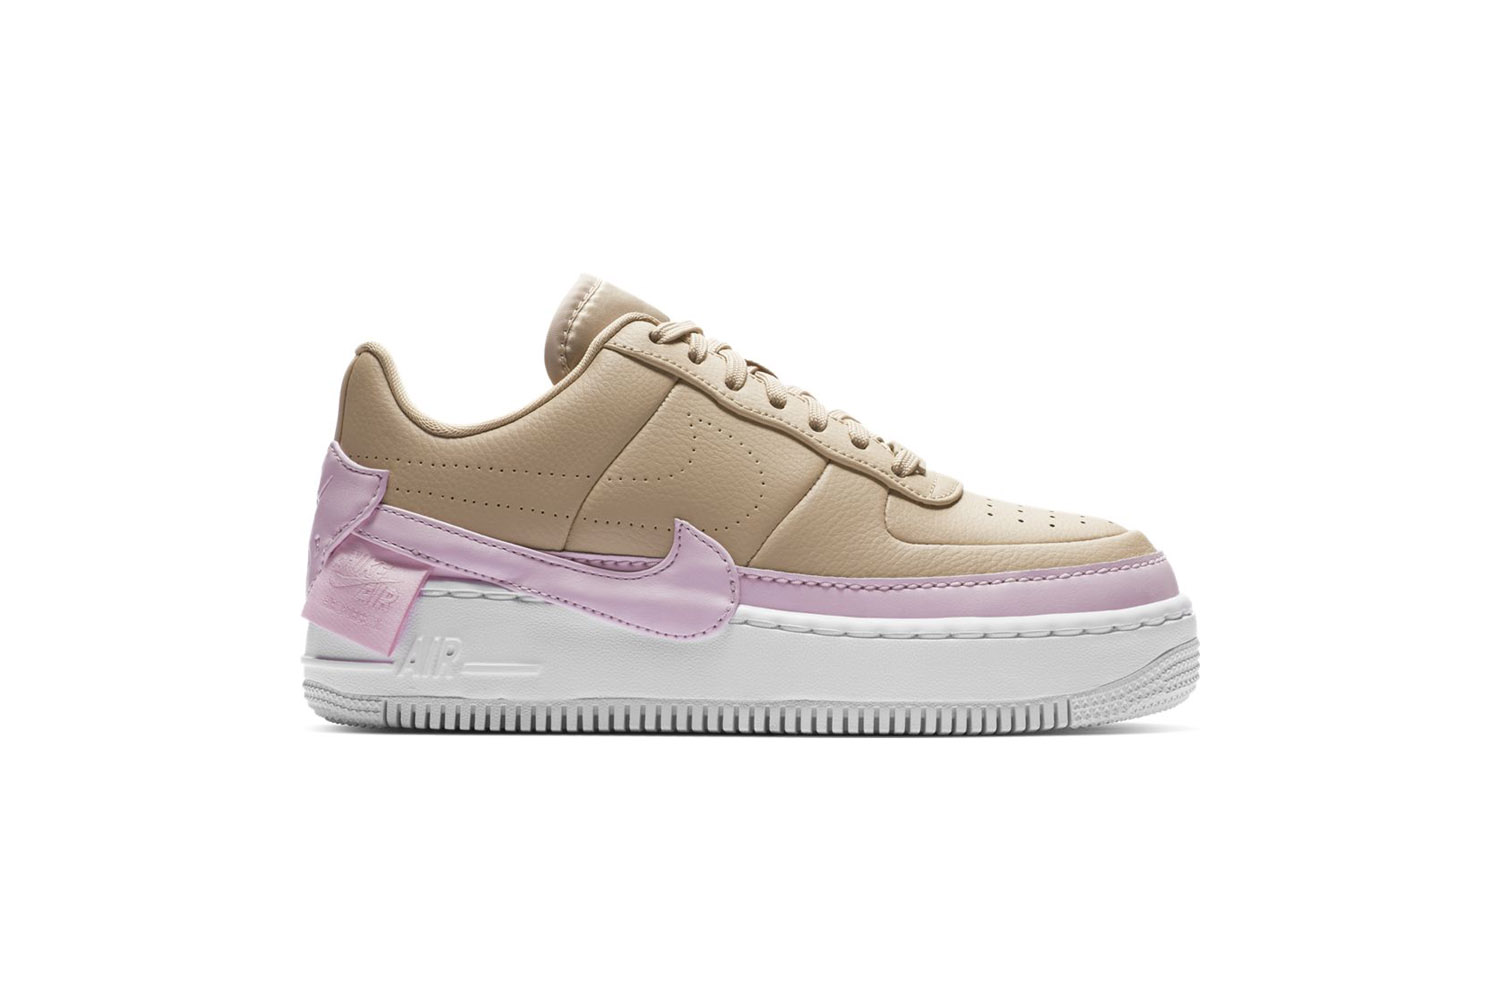 new style 2100d b48d0 Nike Air Force 1 Jester XX Donna - NIKE AS - Anaclerico Spor